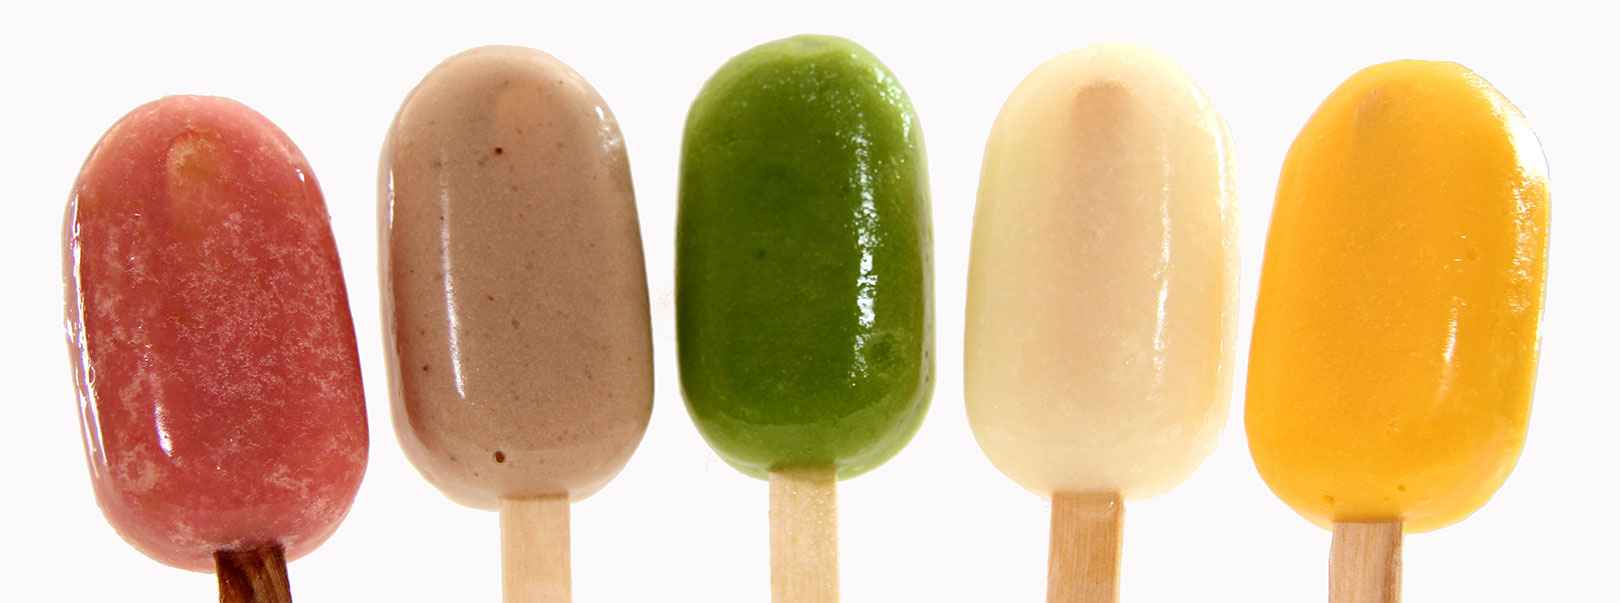 Our ice lollies contain no added sugar.